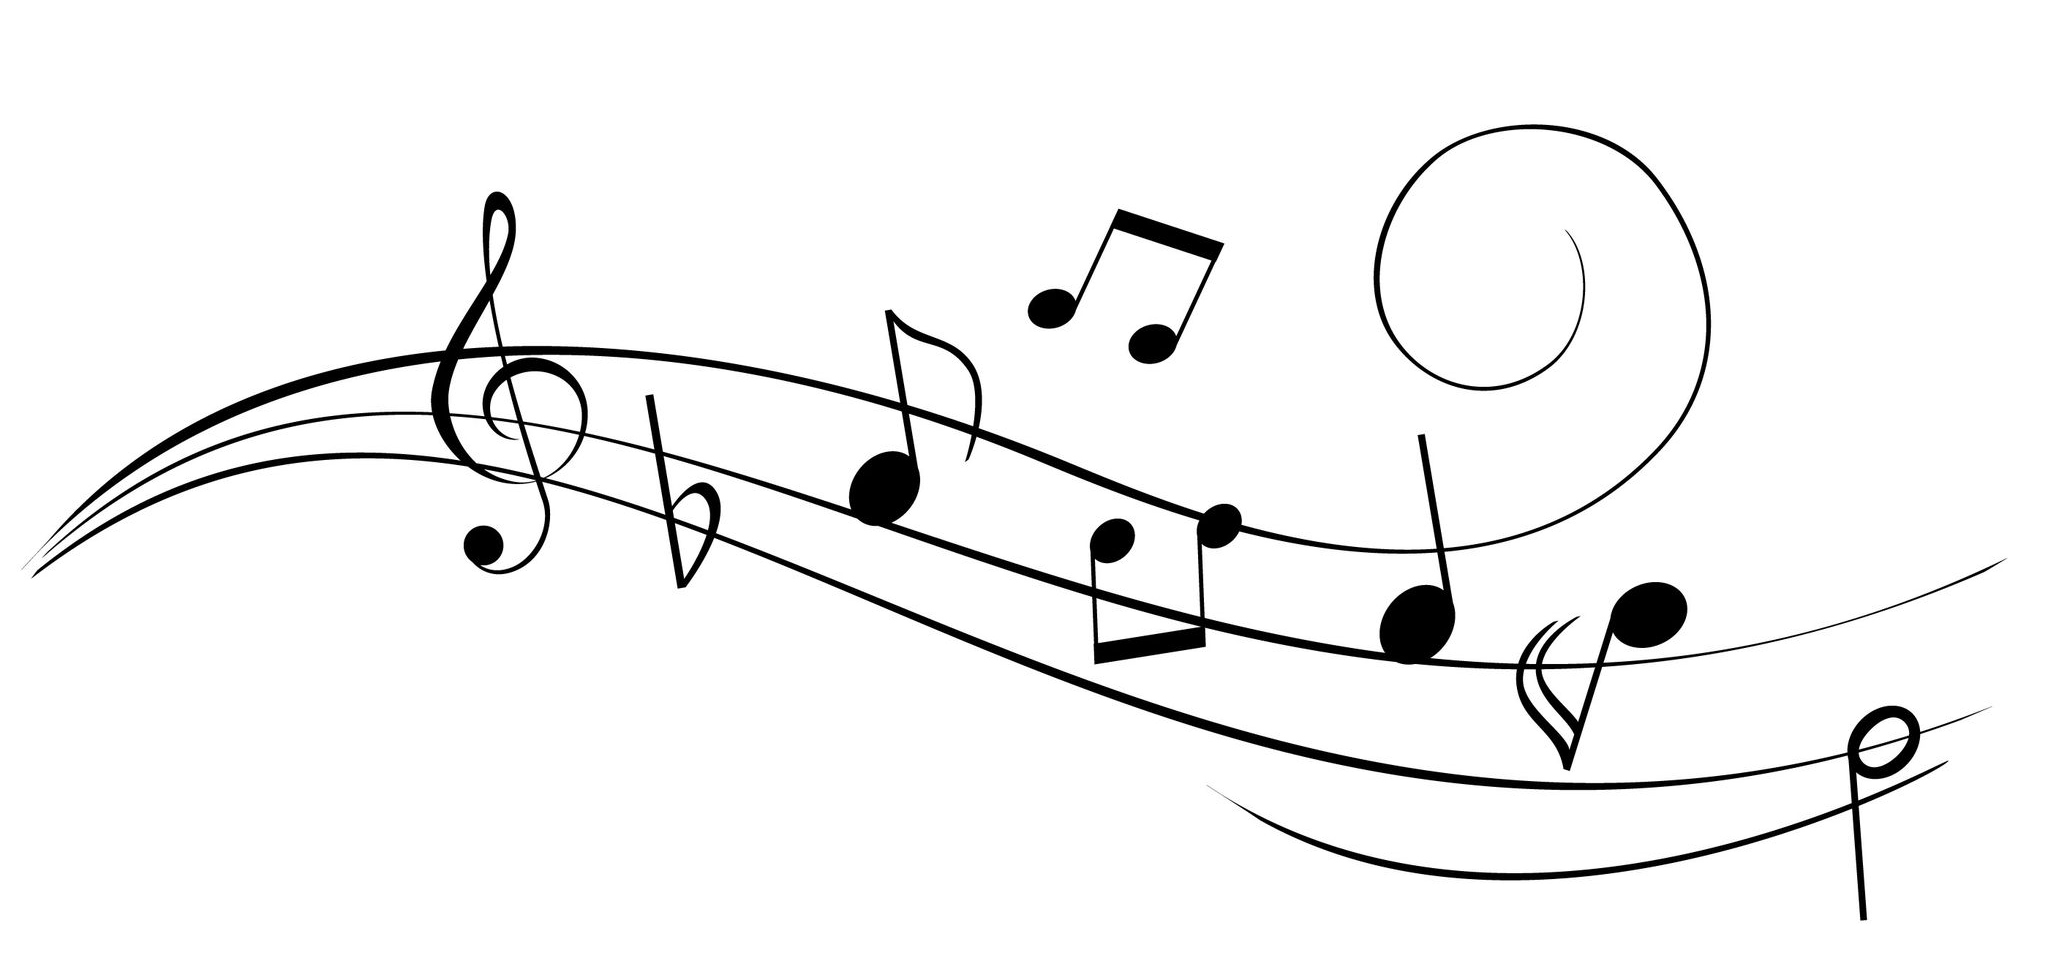 Line Art Music Notes : Music notes drawings clipart best